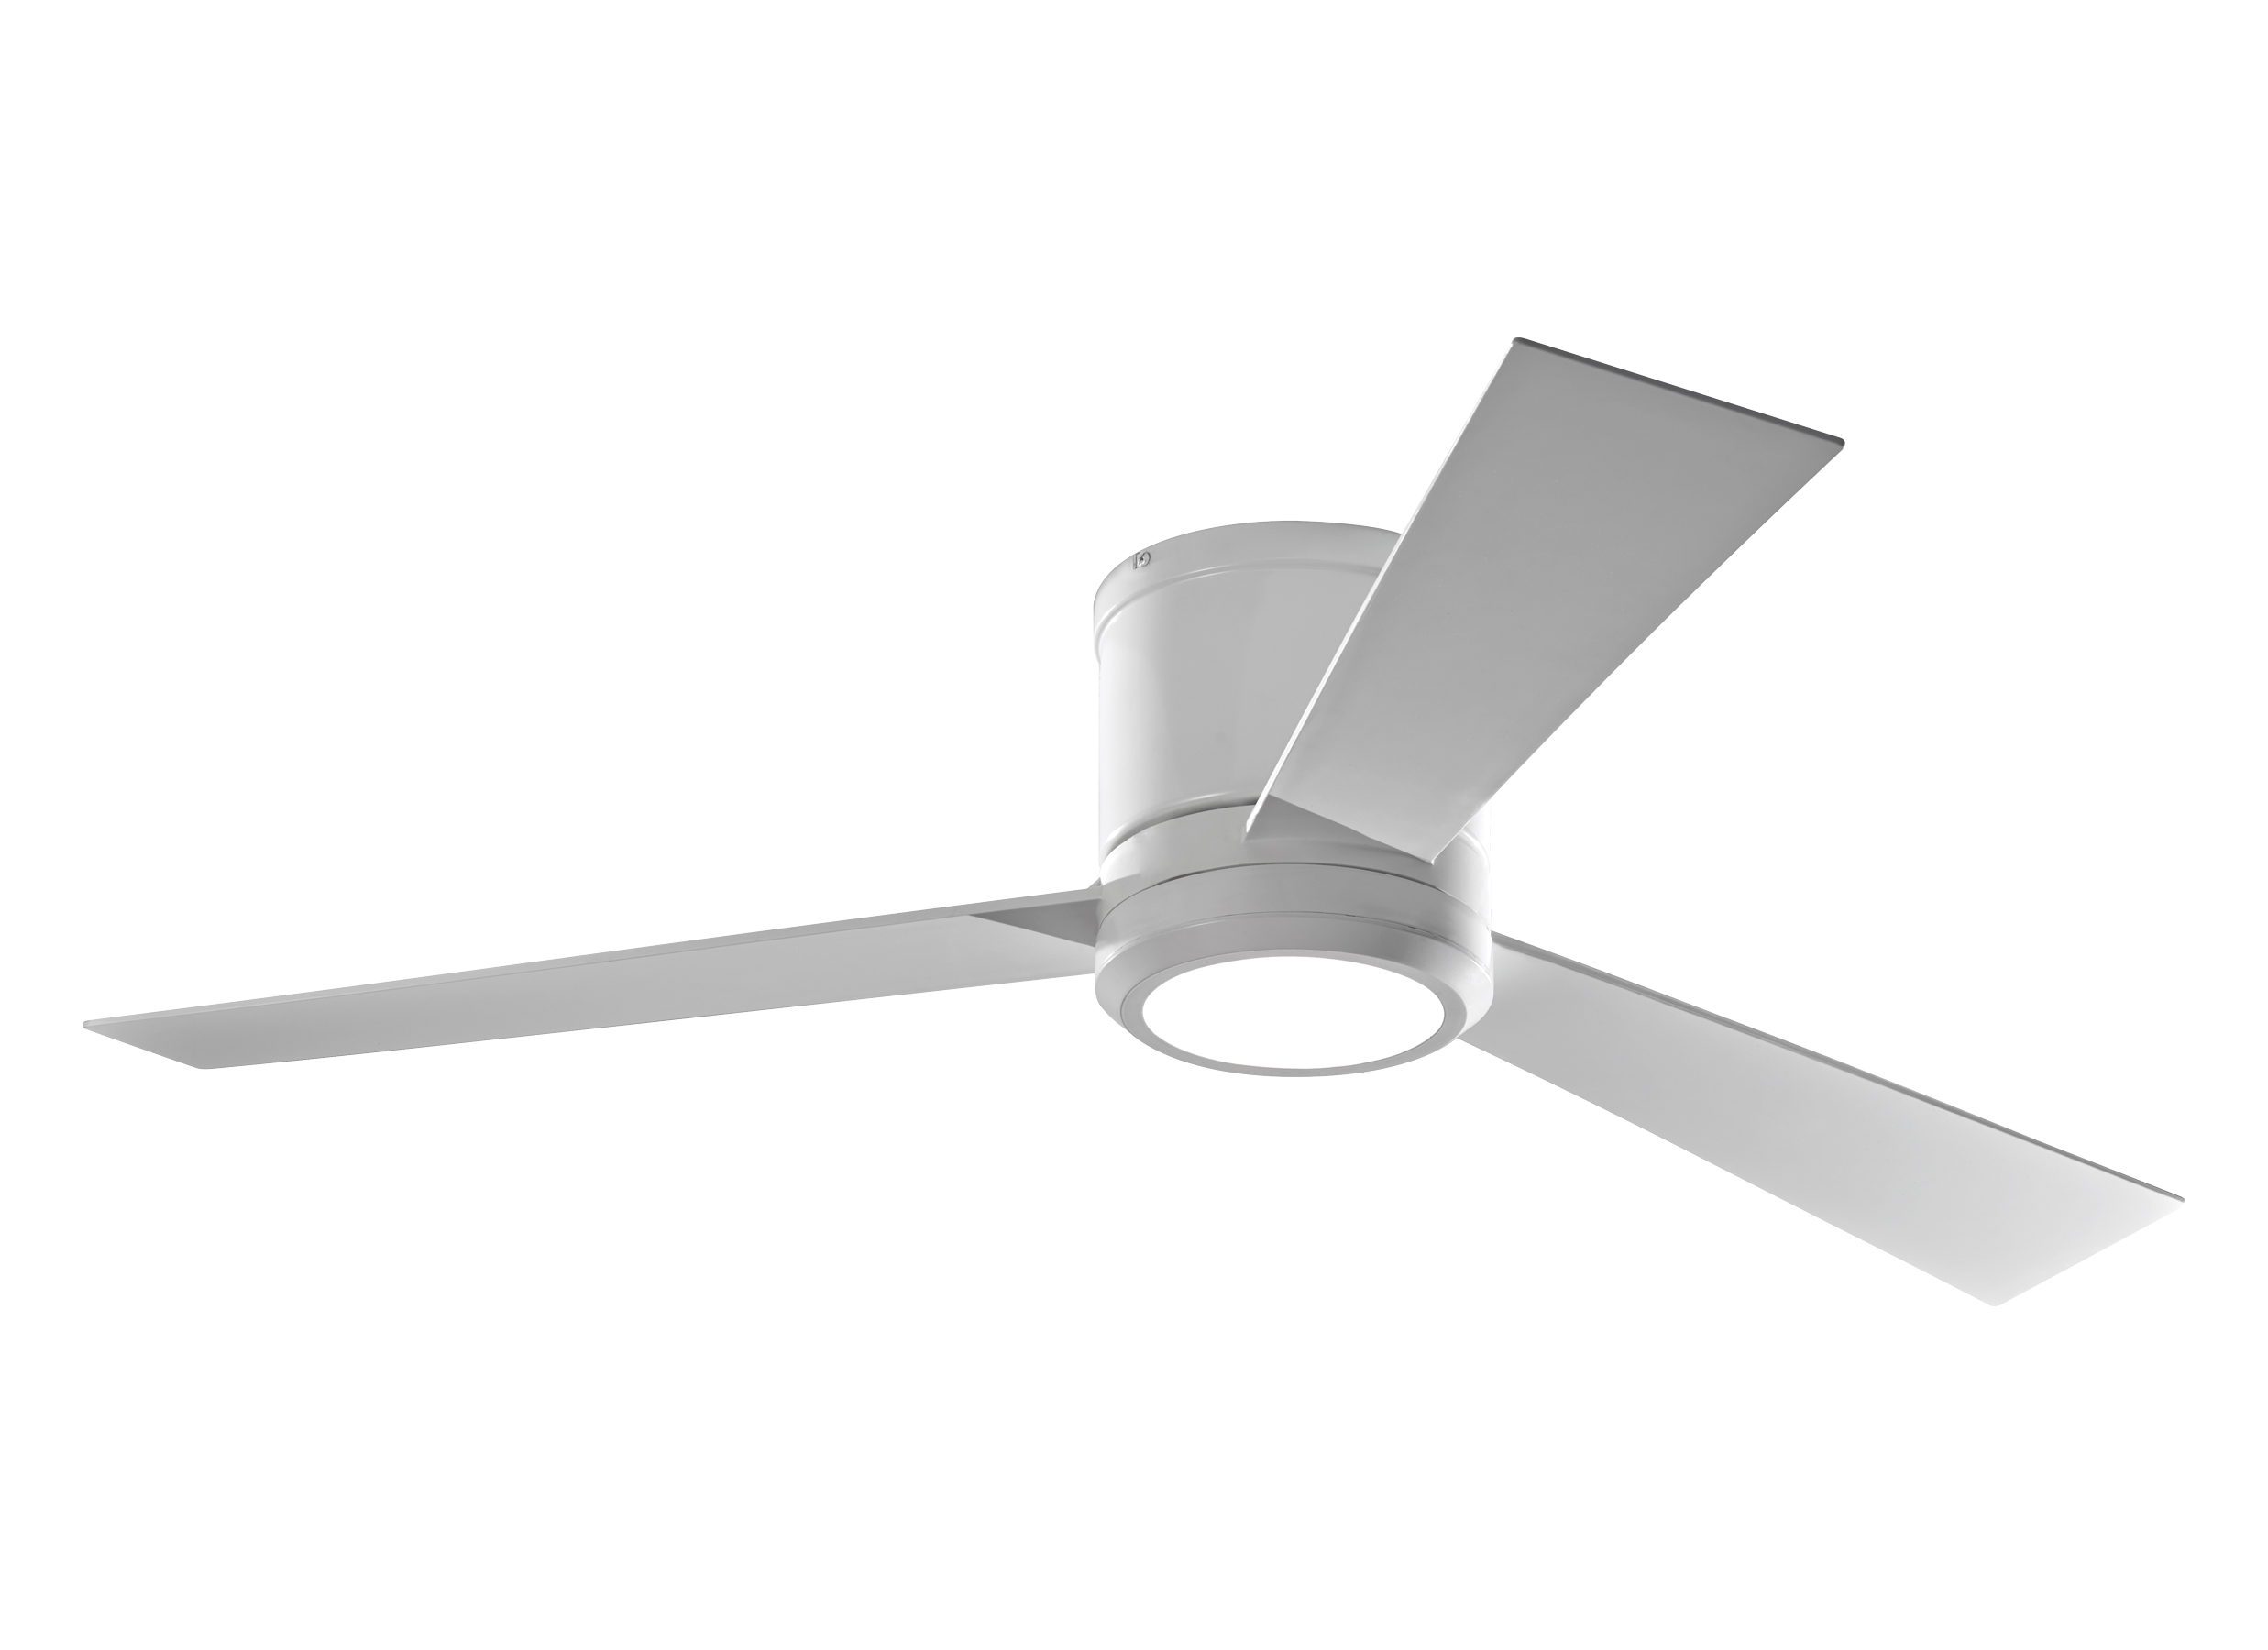 Clarity max ceiling fan with light by monte carlo 3clmr56rzwd v1 aloadofball Image collections